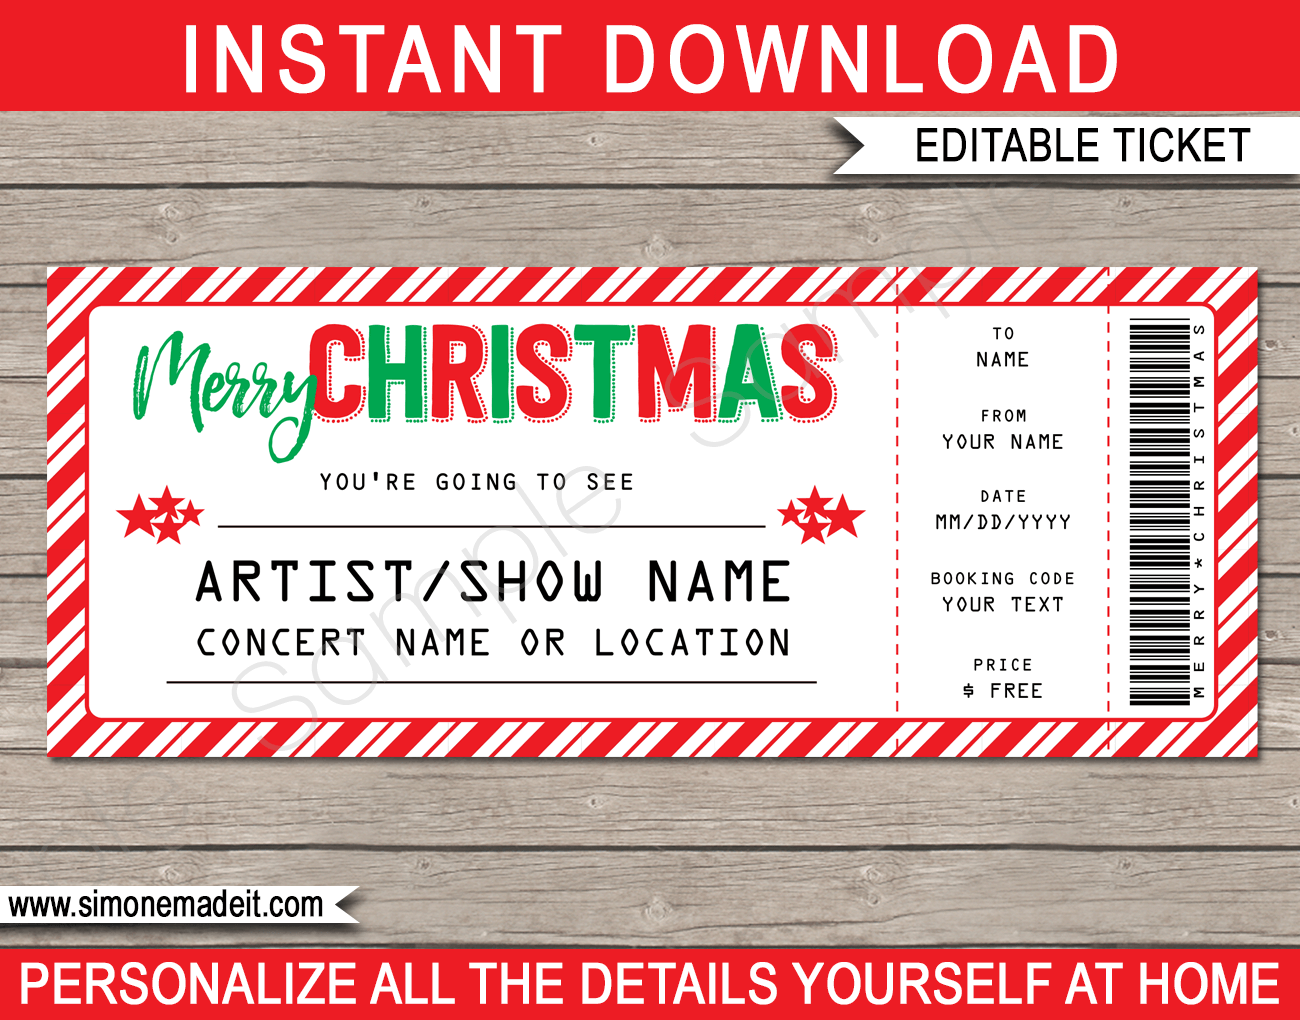 Concert Ticket Template Free Download Unique Christmas Gift Concert Ticket Template  Red Green & White .